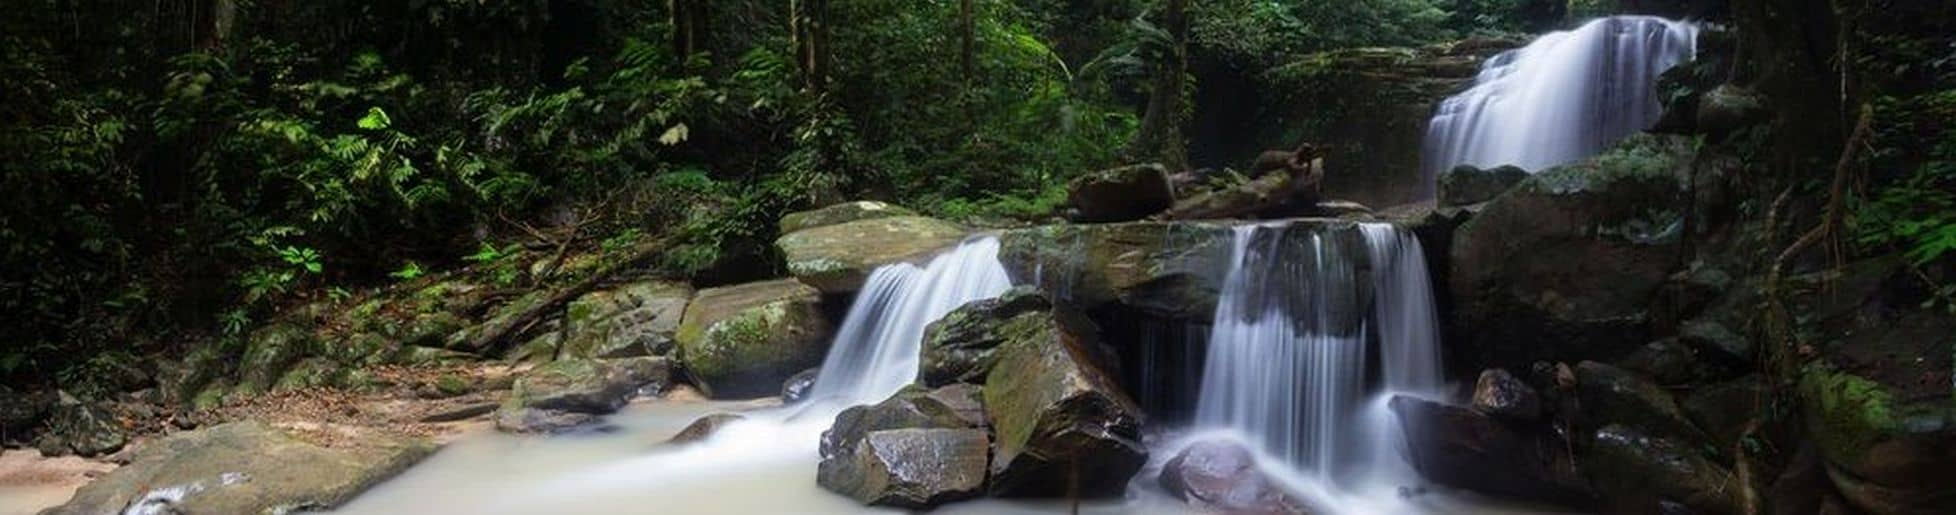 Beautiful waterfall in Borneo jungle